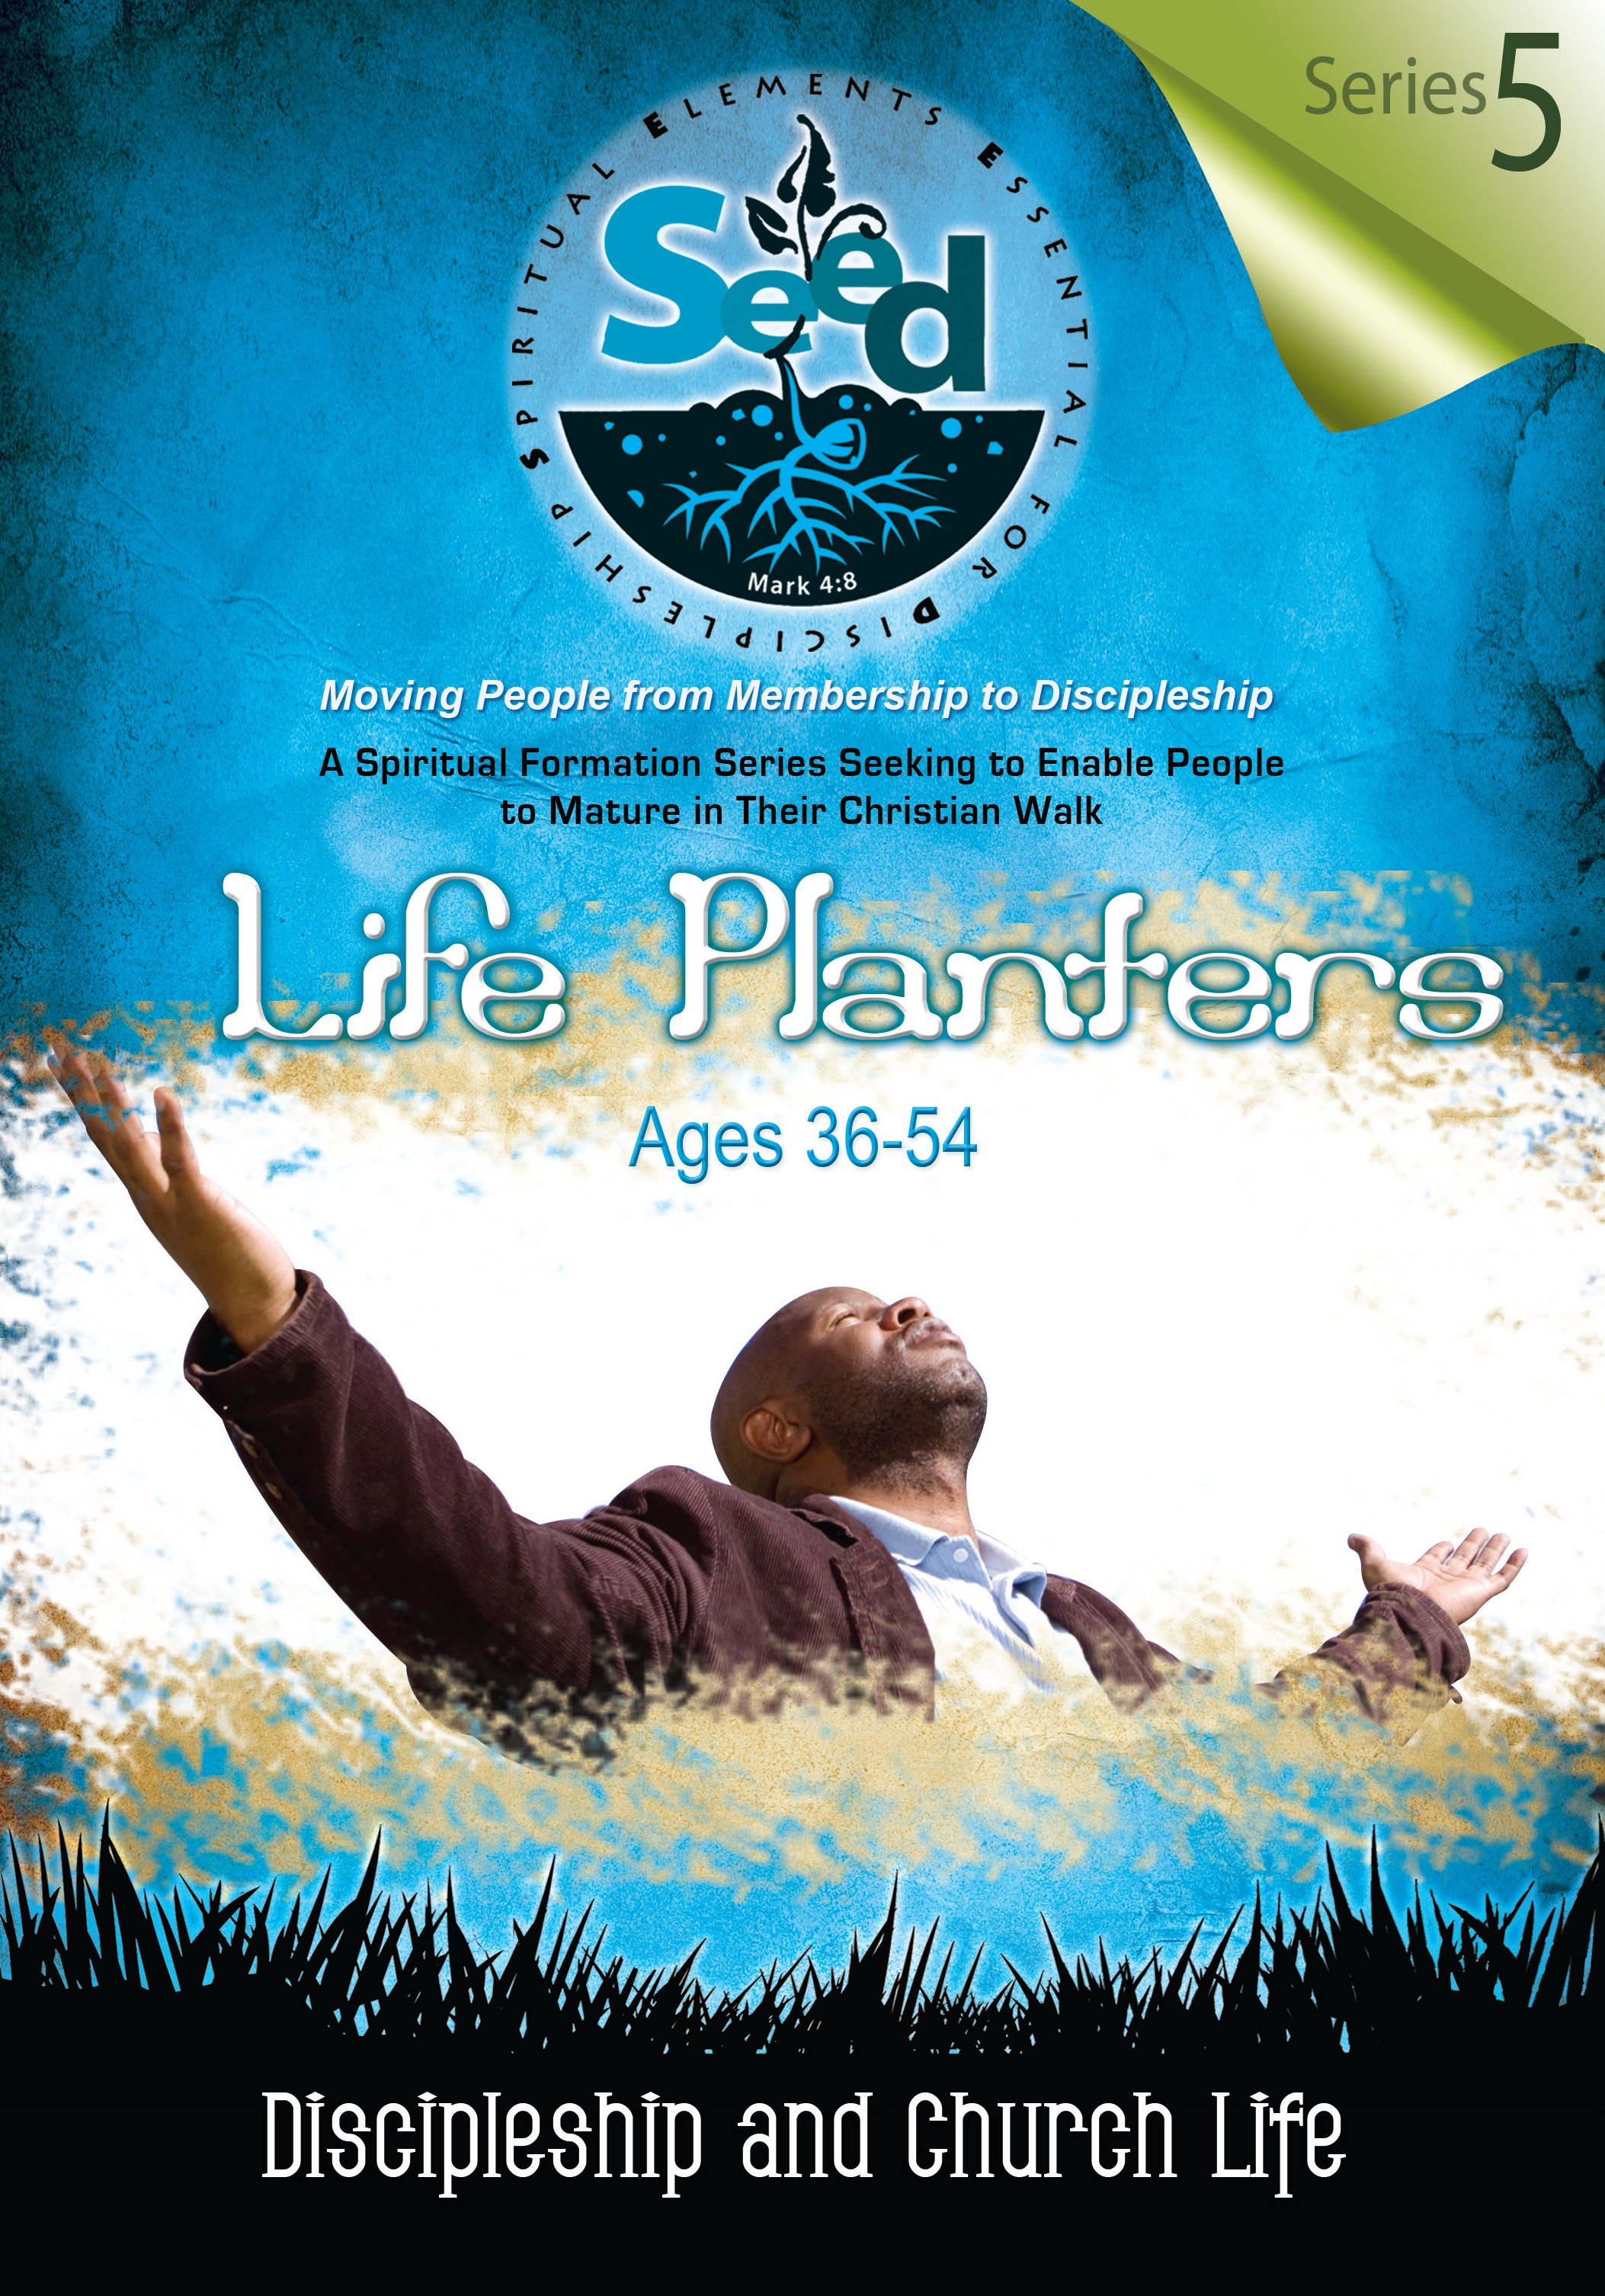 SEED Life Planters (Ages 36-54): Series 5: Discipleship and Church Life